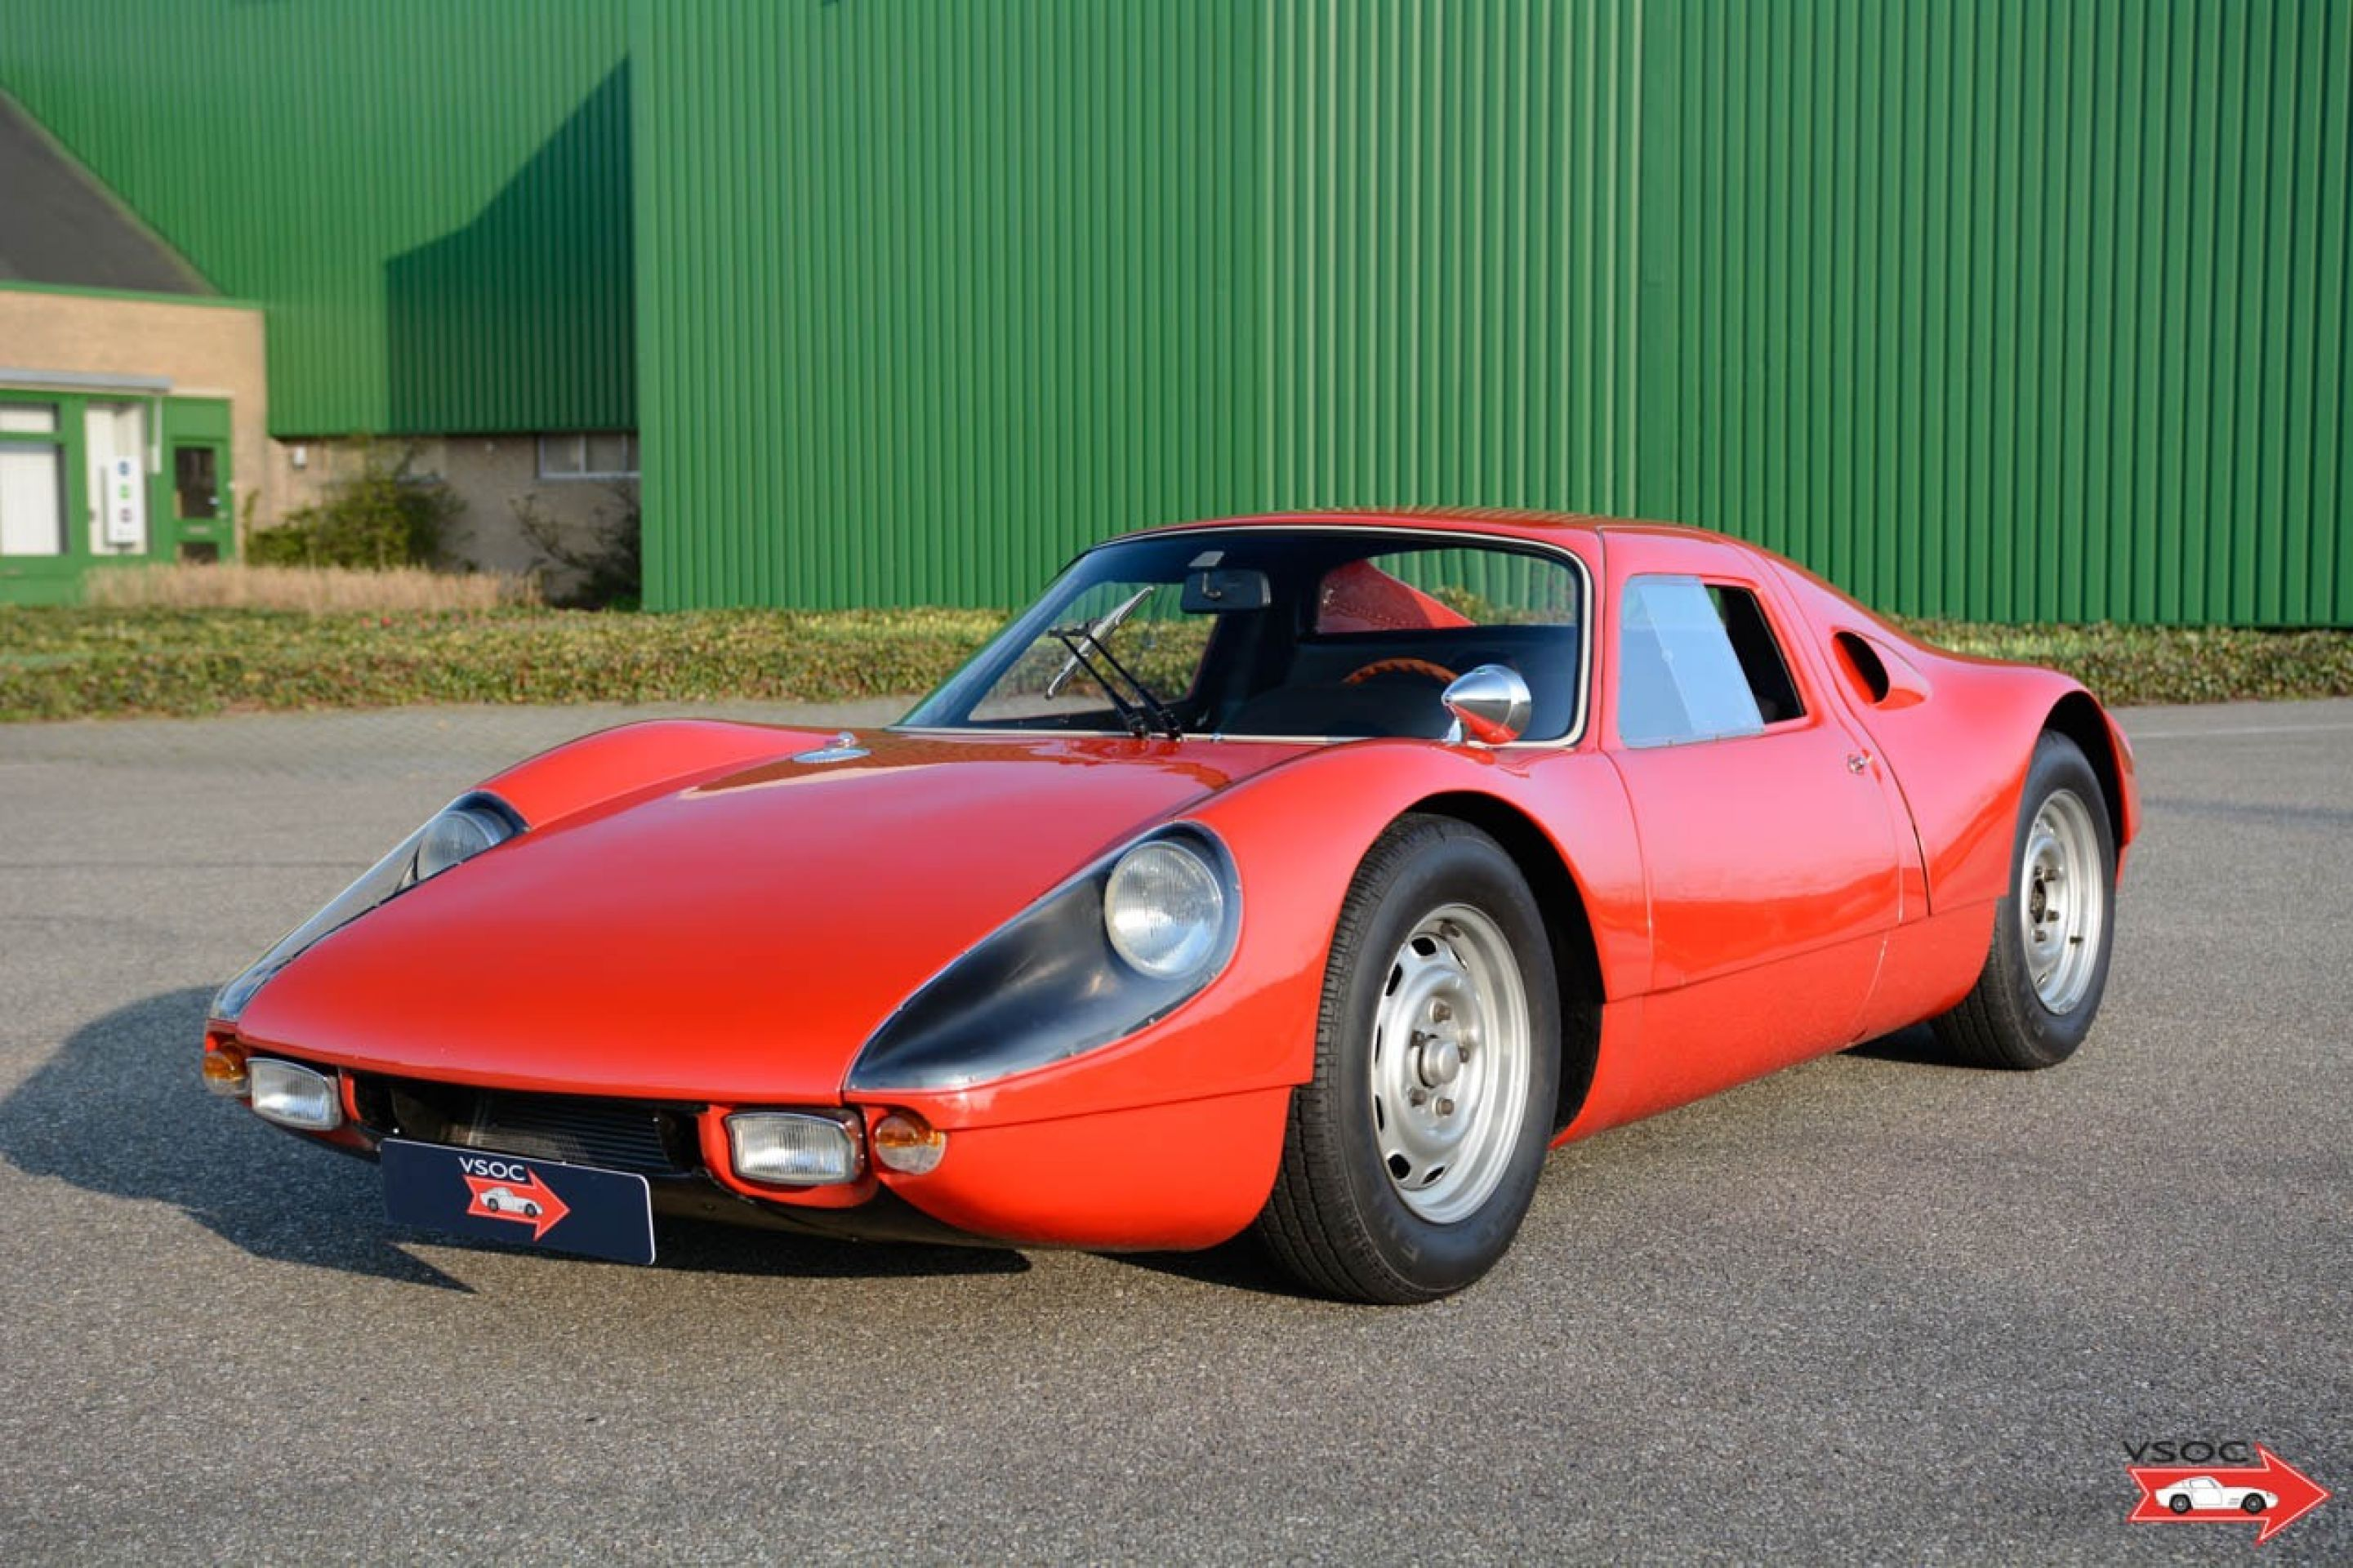 Porsche 904 GTS - Continuous history and raced in period